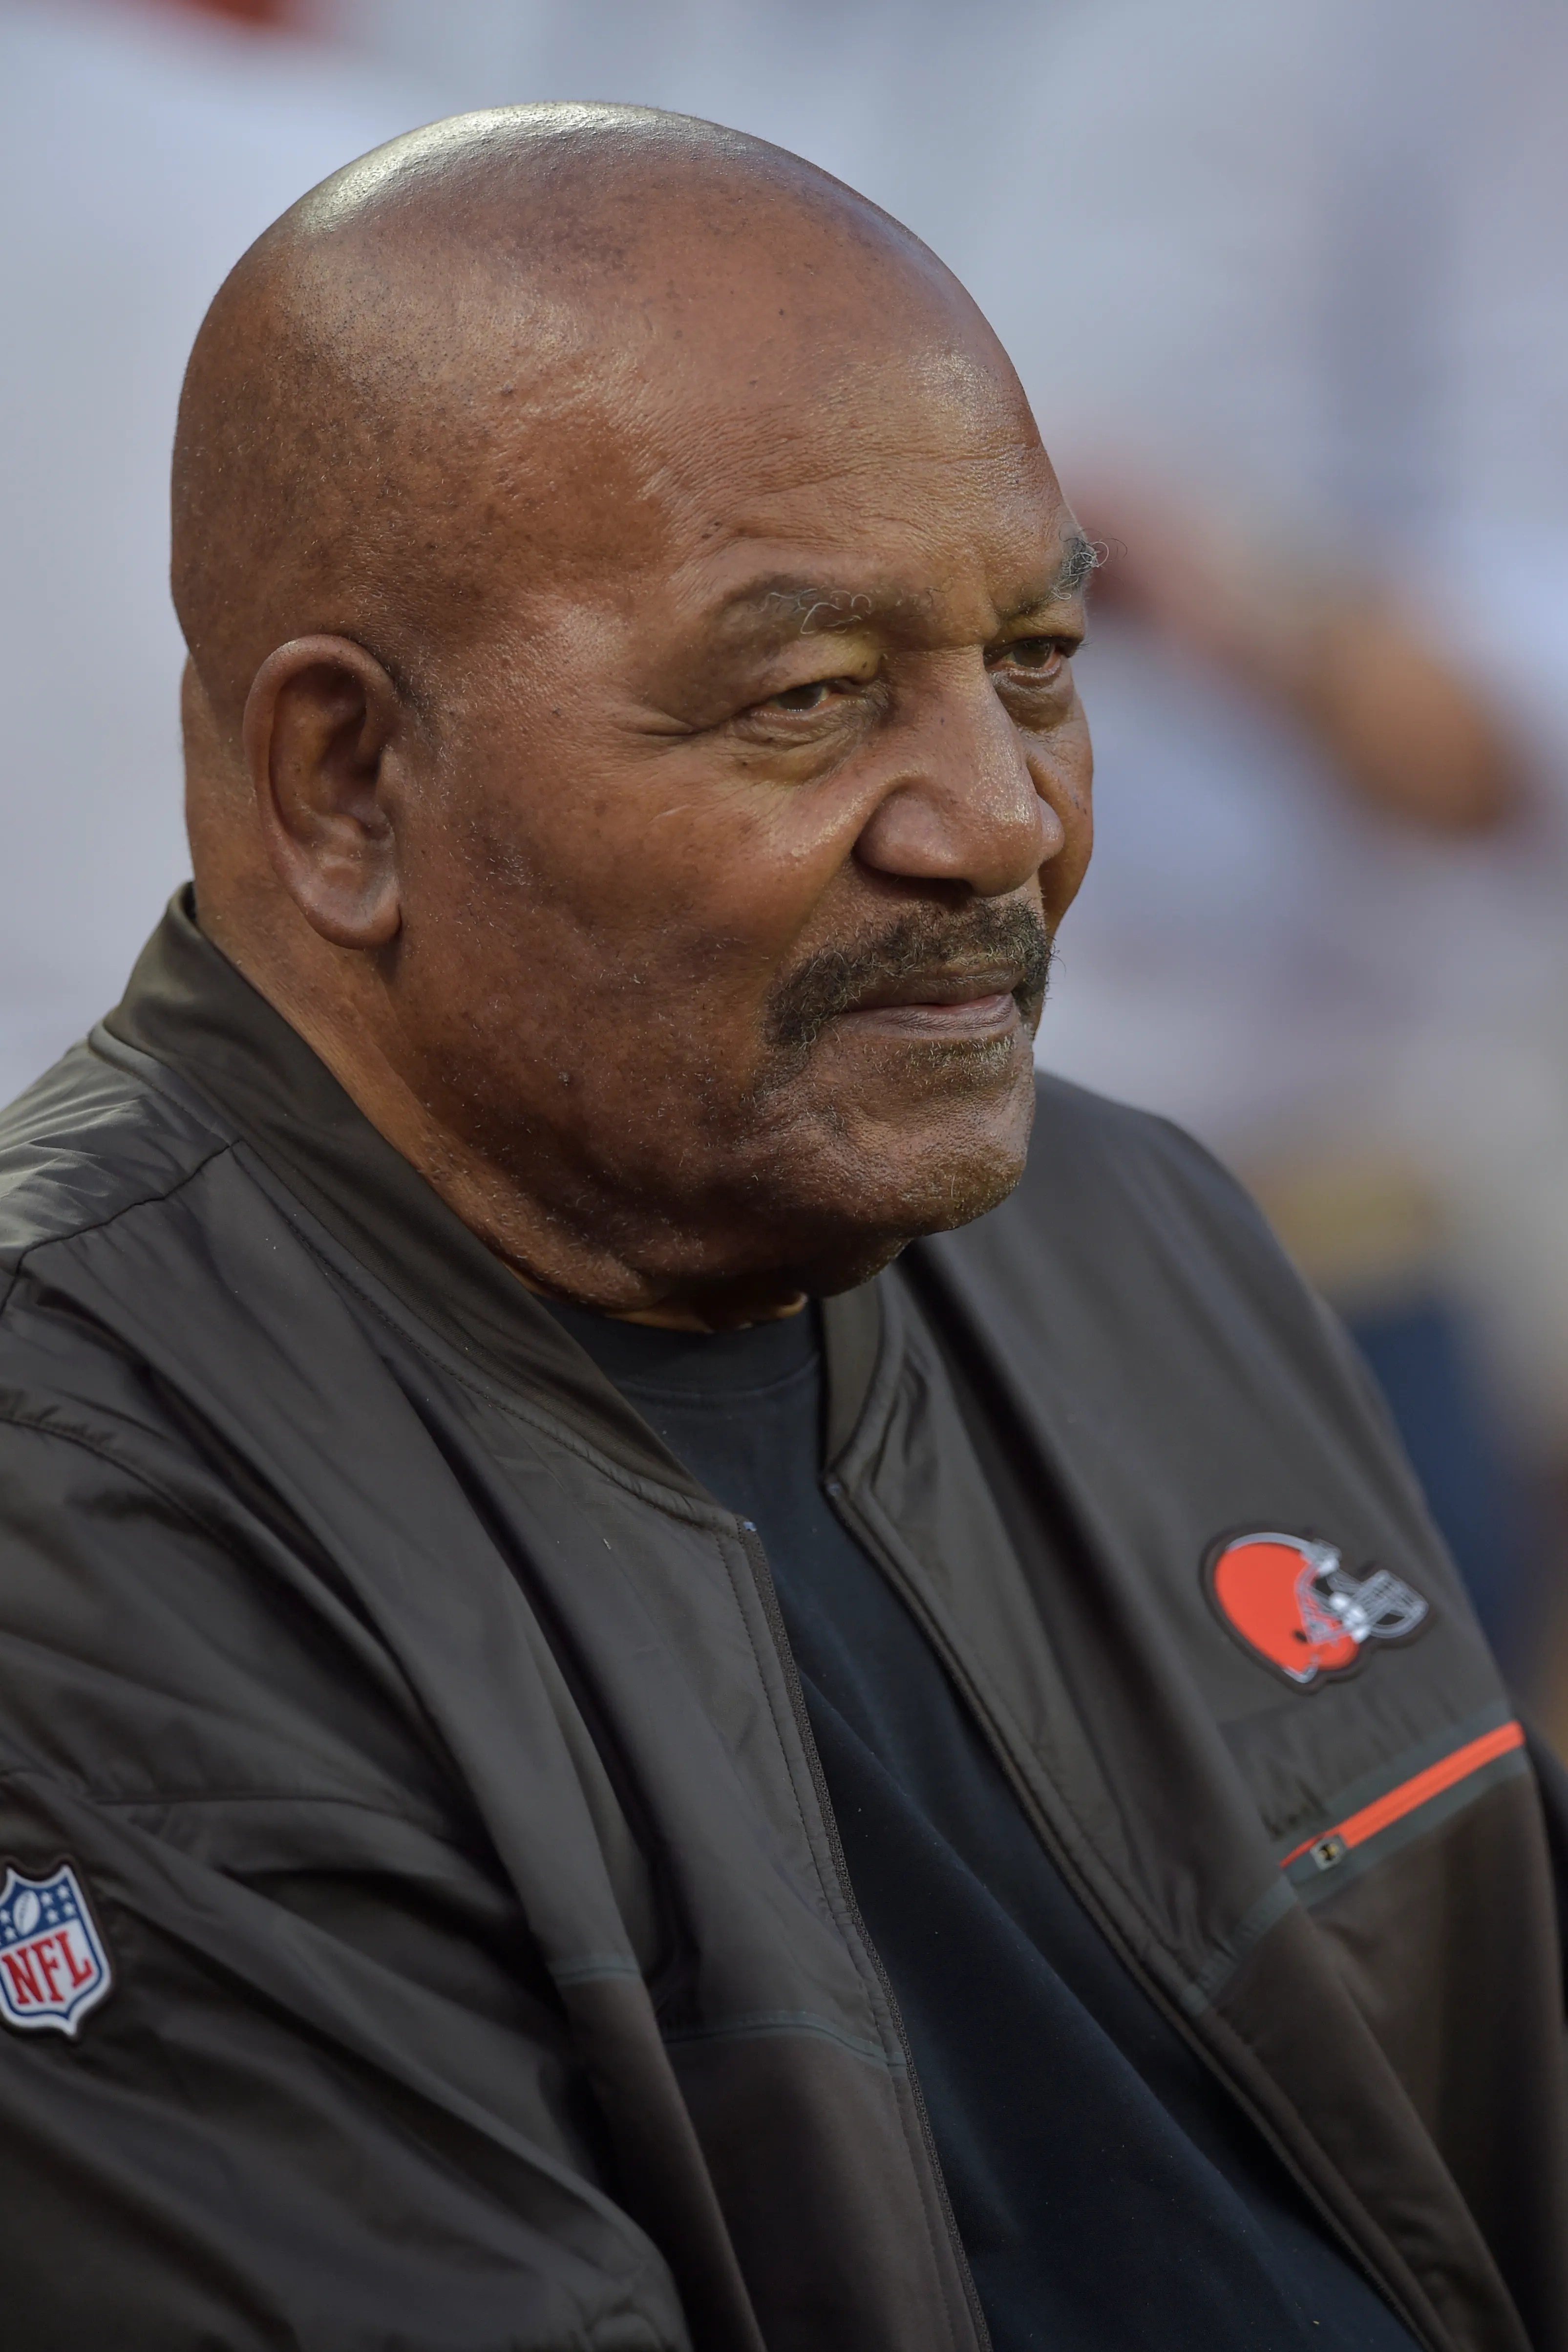 Nfl Why Jim Brown Is Not Among Greatest Players In League